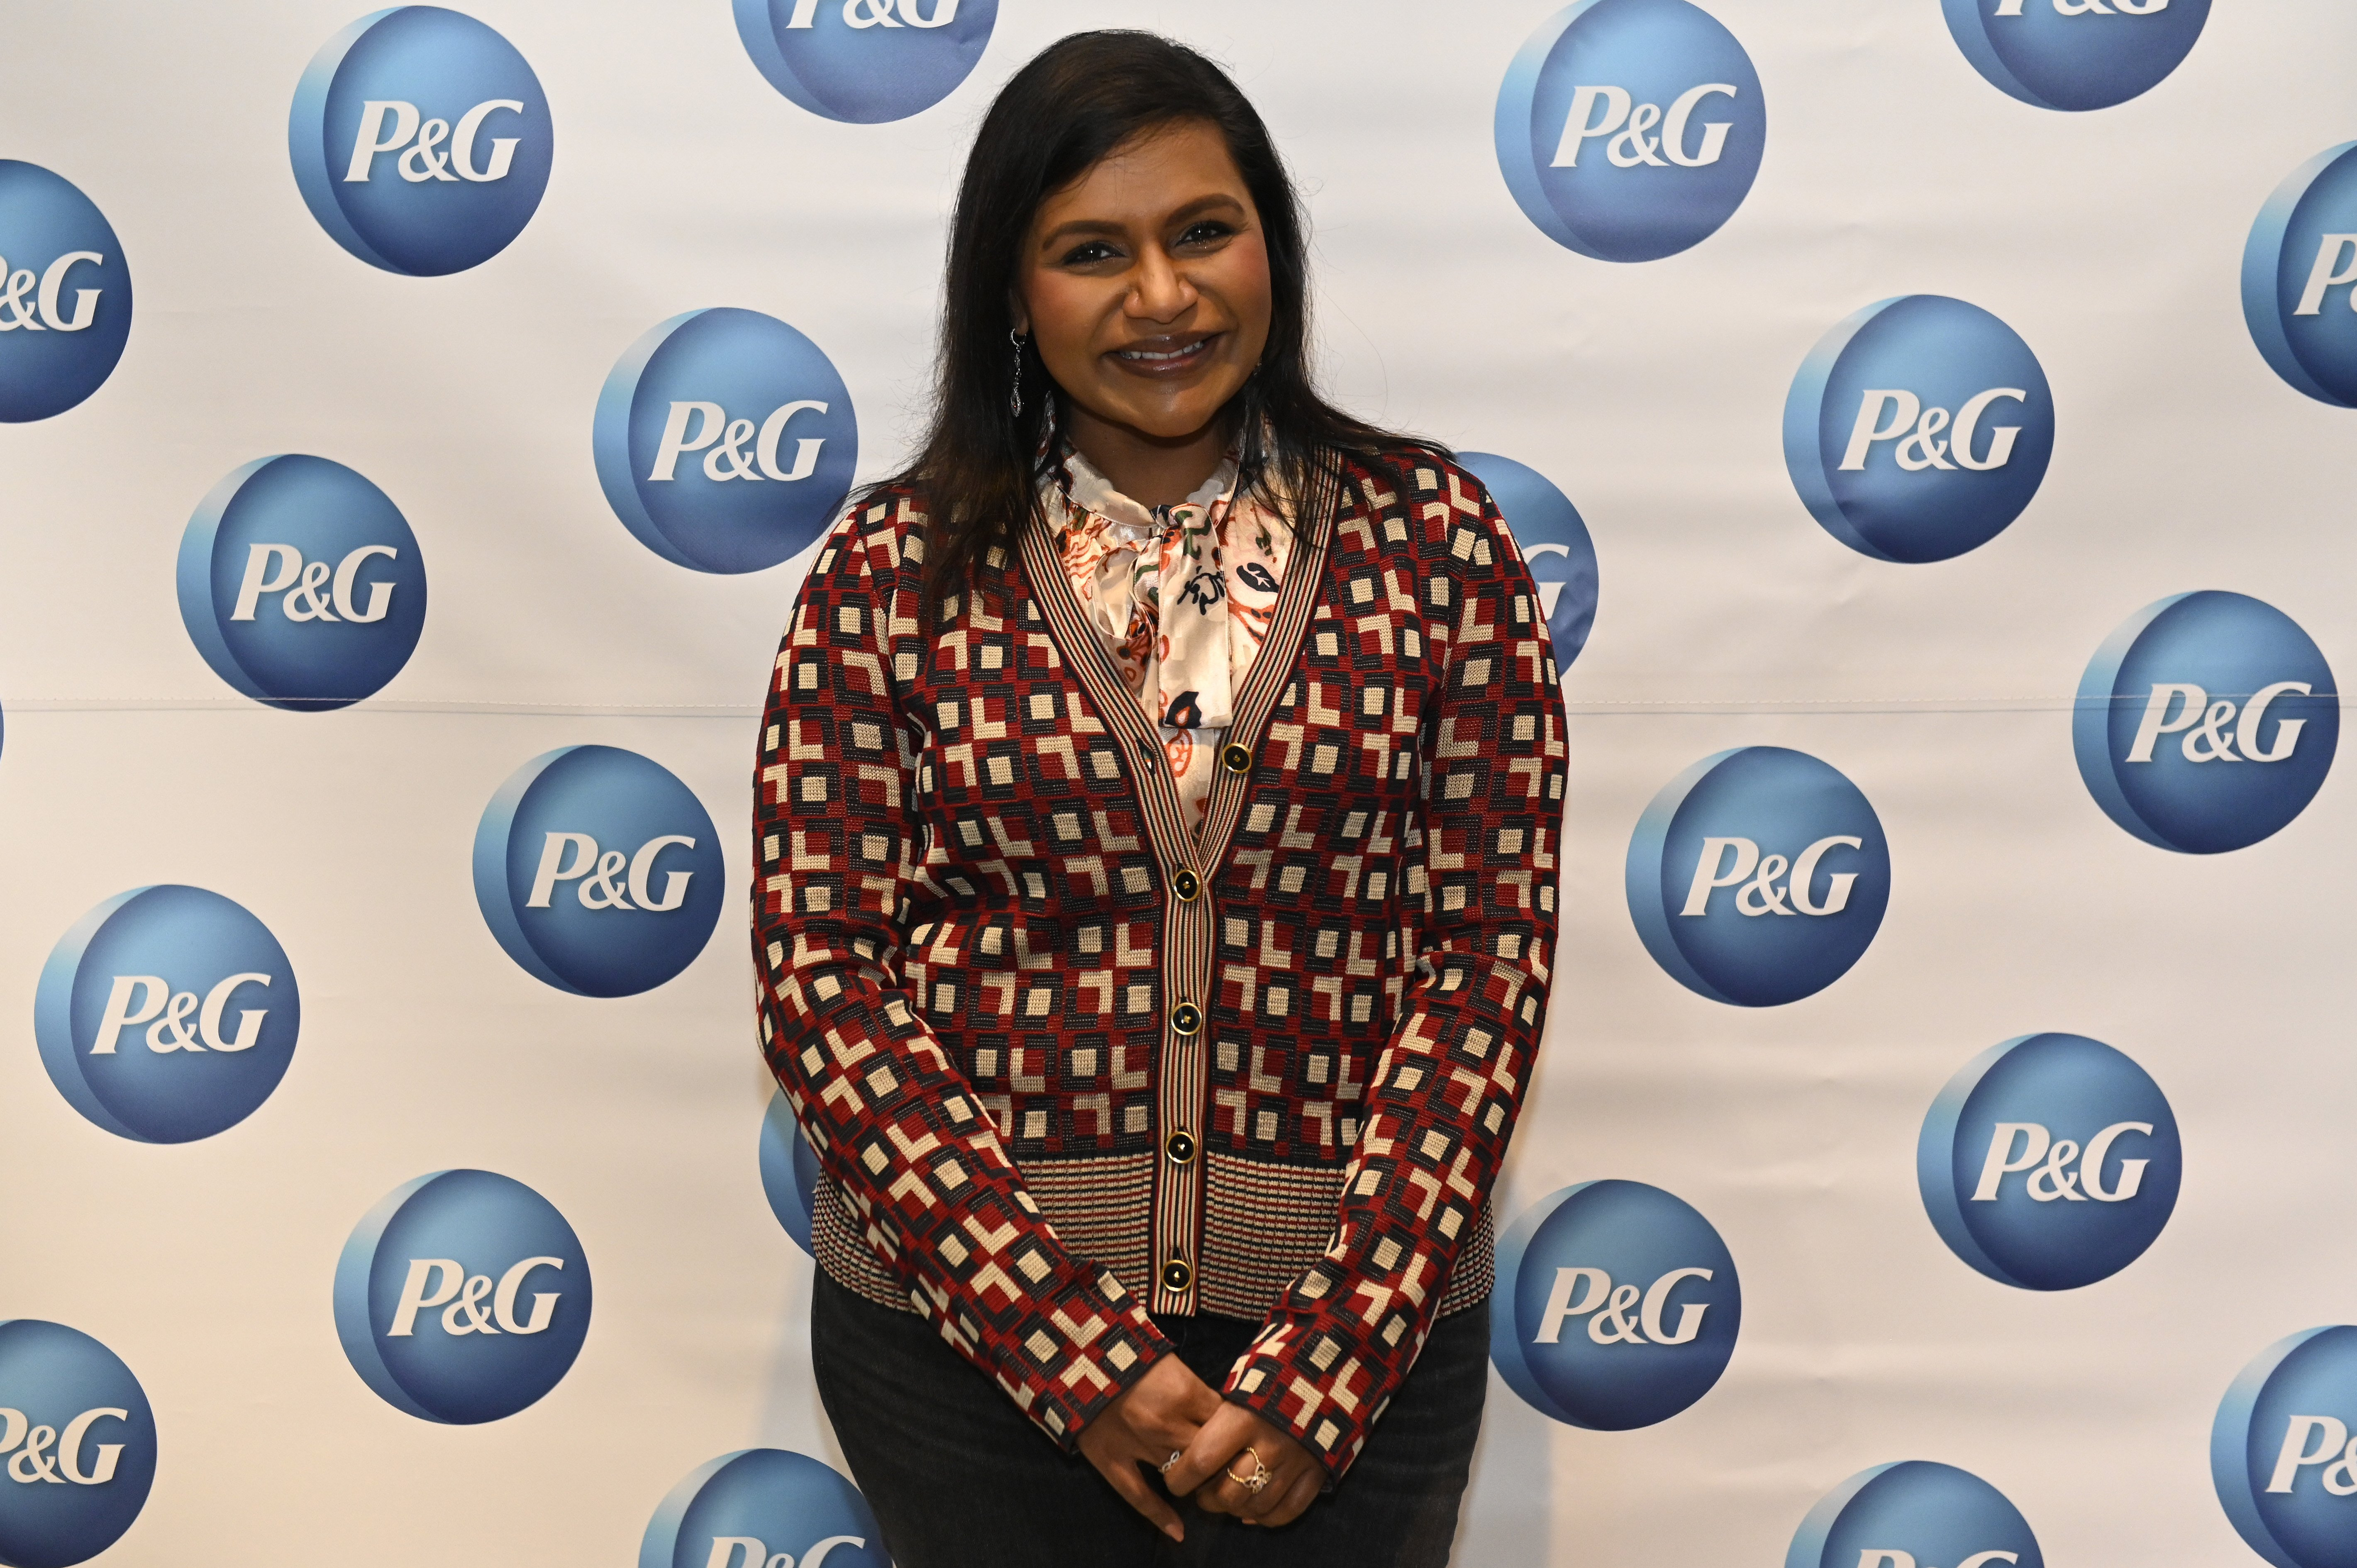 Mindy Kaling attends the P&G #WeSeeEqual Forum held at Proctor & Gamble on March 04, 2020 in Cincinnati, Ohio | Photo: Getty Images